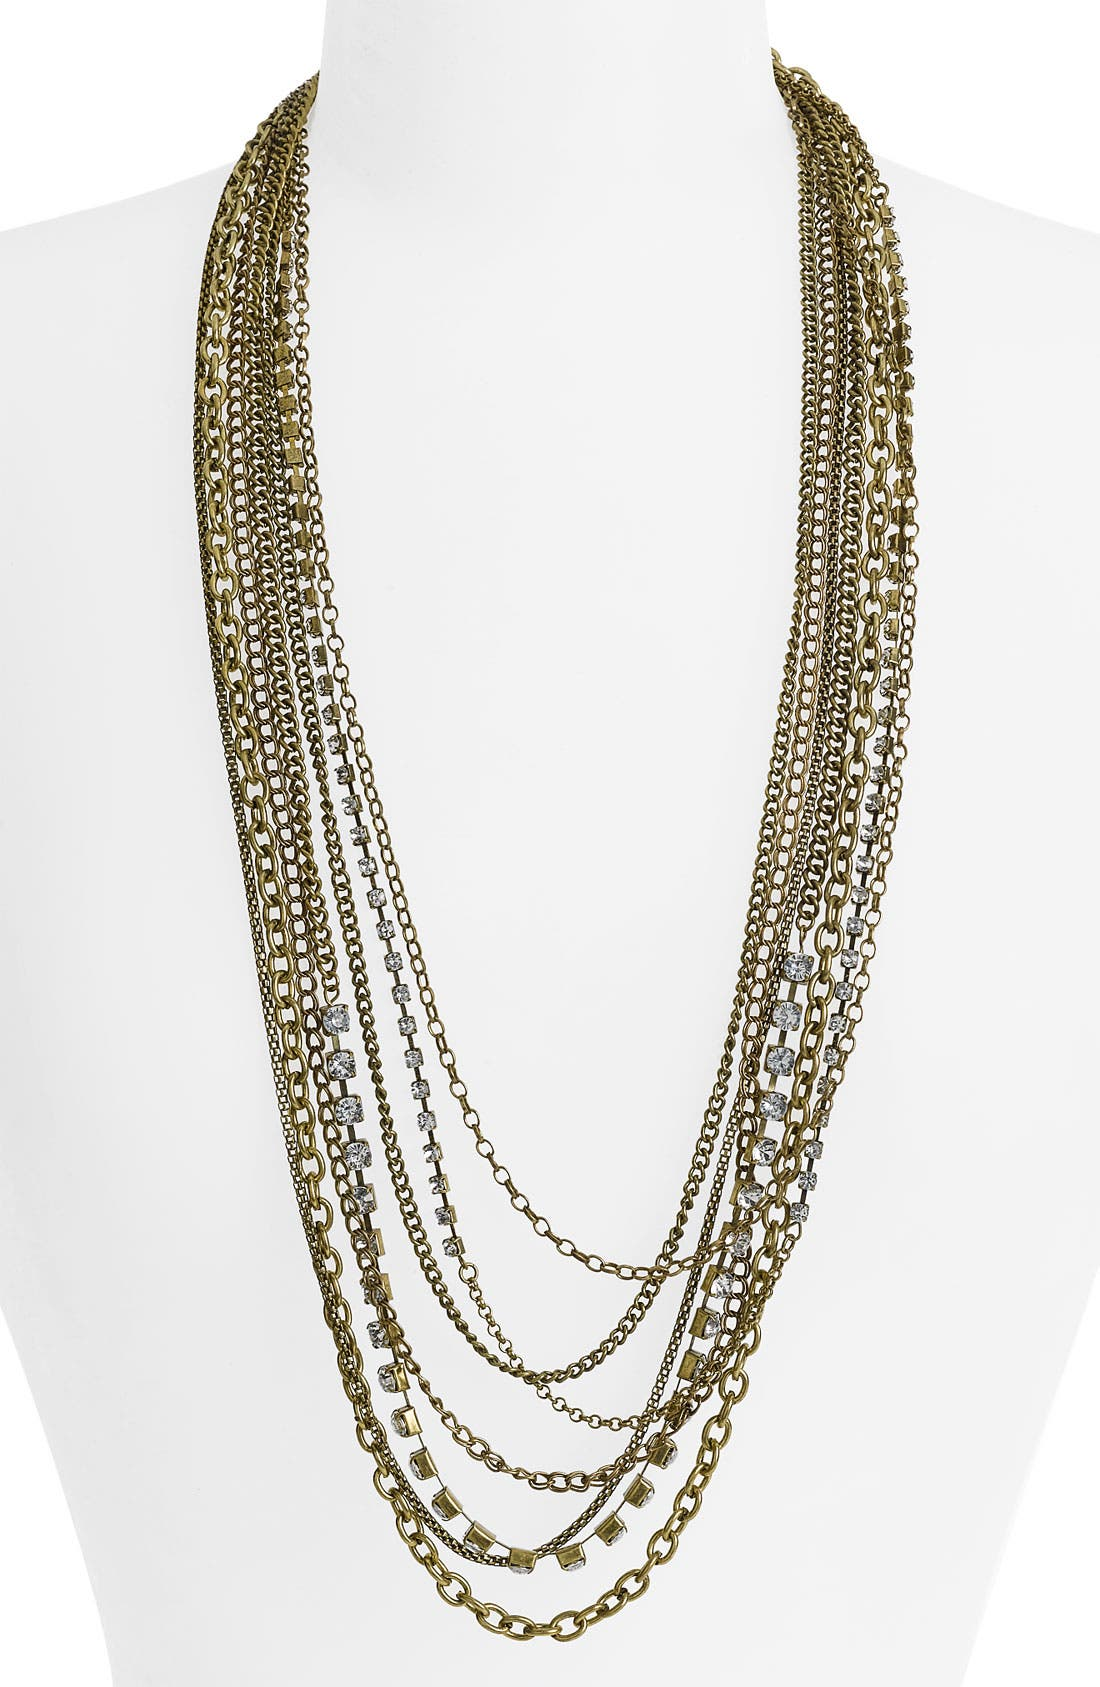 Main Image - Alexia Crawford Multistrand Necklace